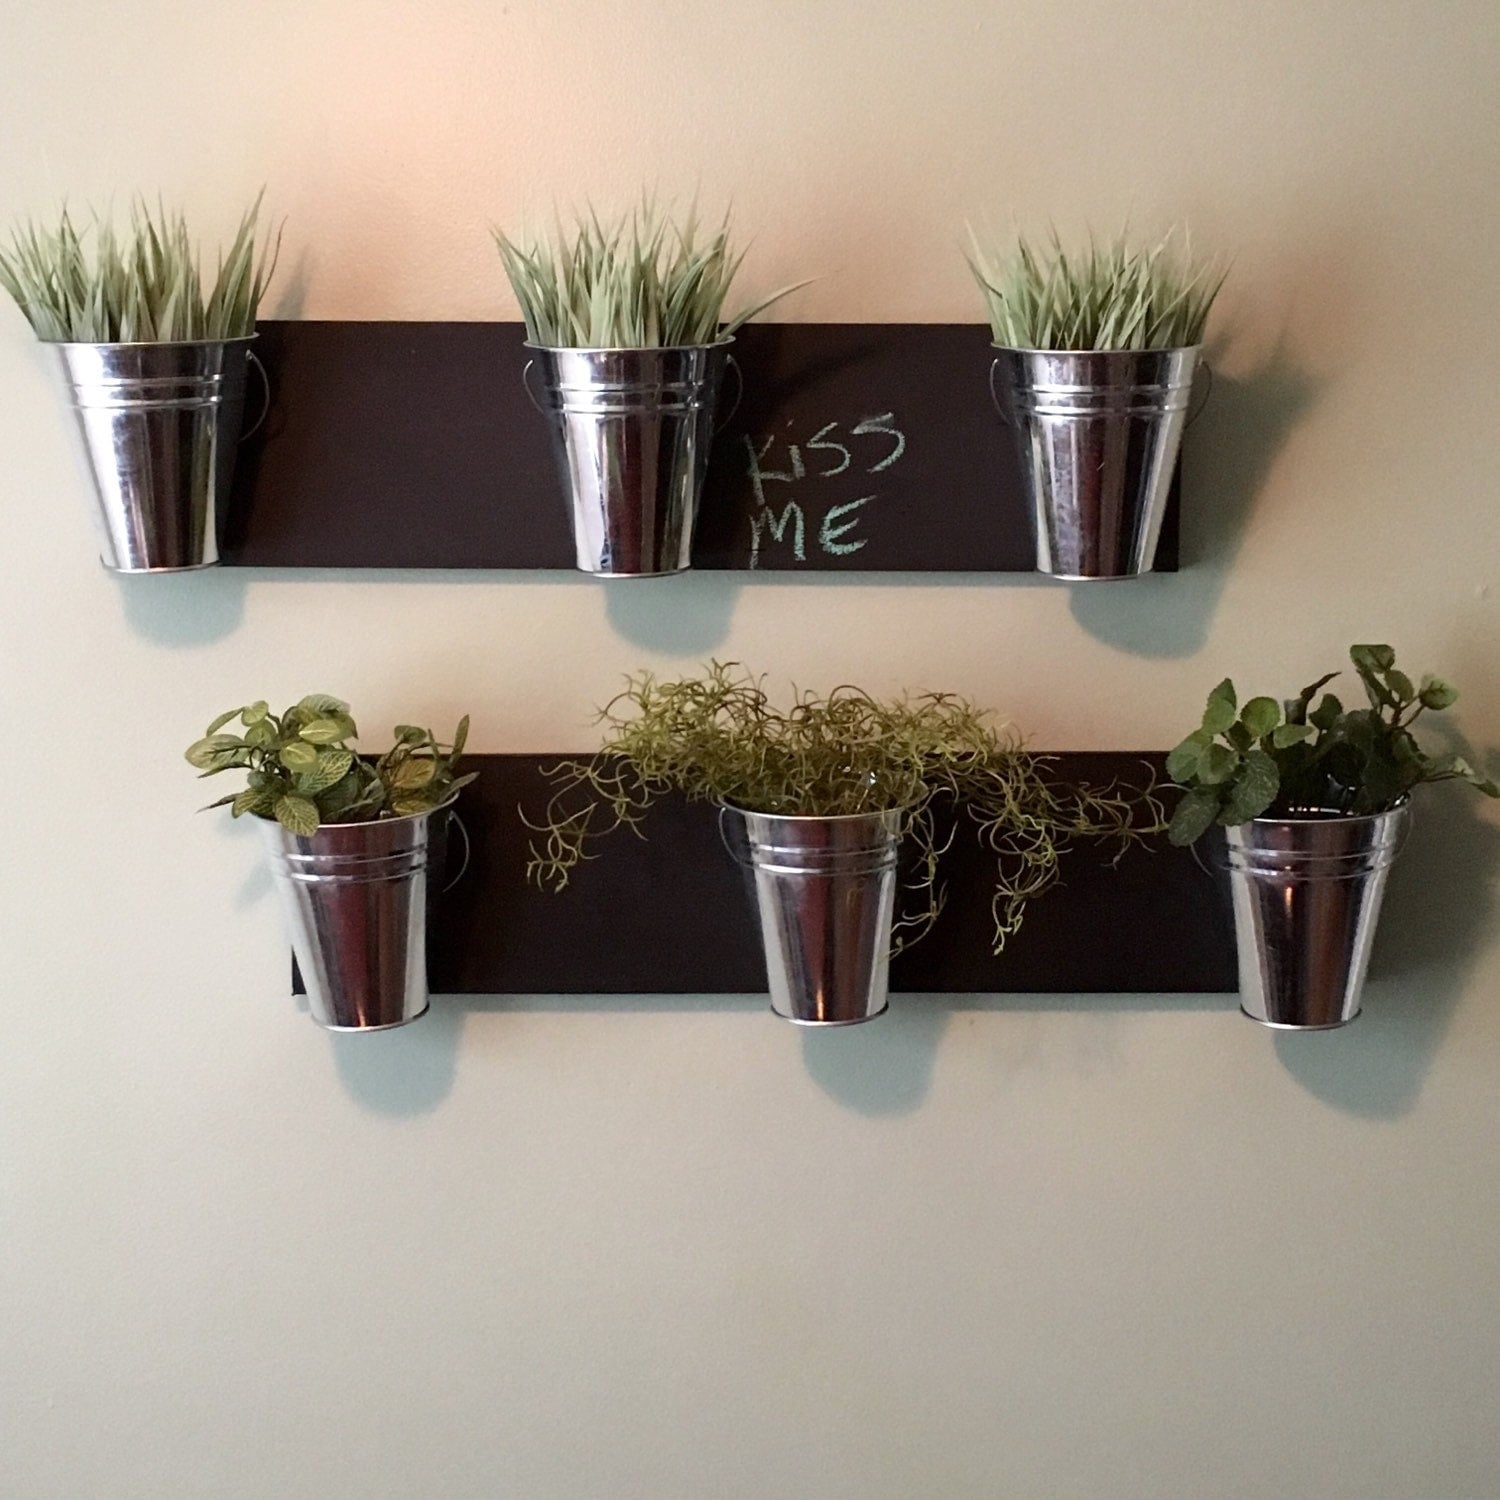 indoor wall planter horizontal mount. Black Bedroom Furniture Sets. Home Design Ideas